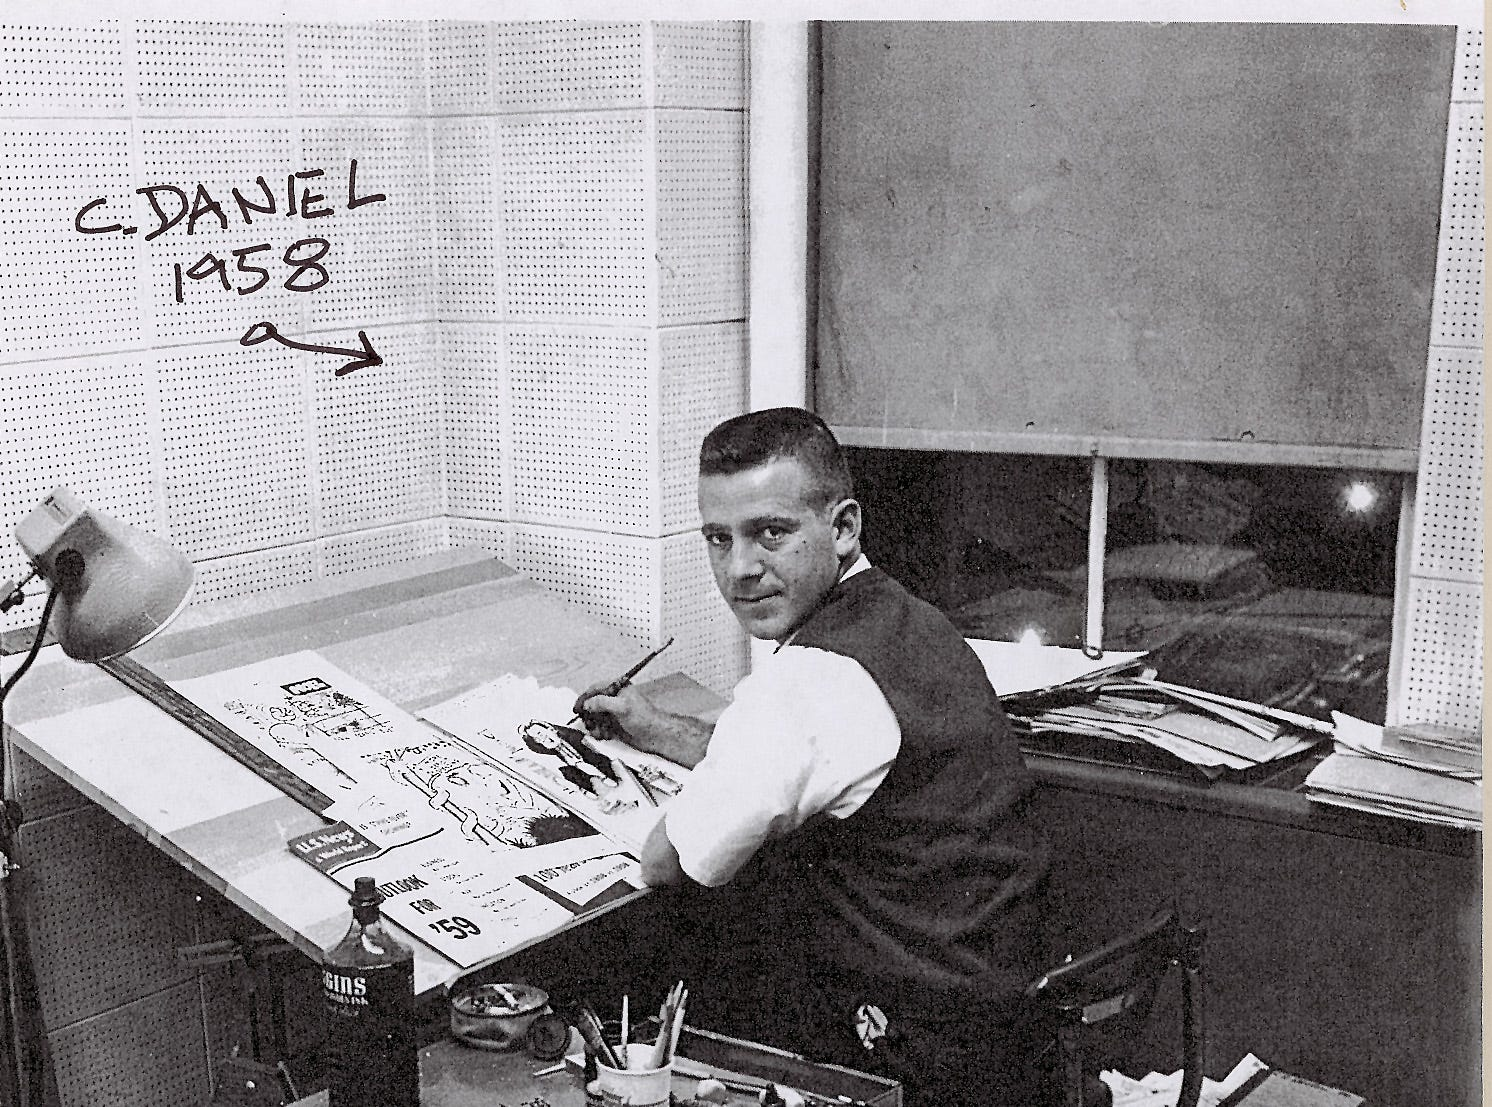 A freshly-minted editorial cartoonist Charlie Daniel plies his trade in this 1958 photograph, presumably from the newsroom of the Knoxville Journal. Daniel celebrates his 50th anniversary in 2008.